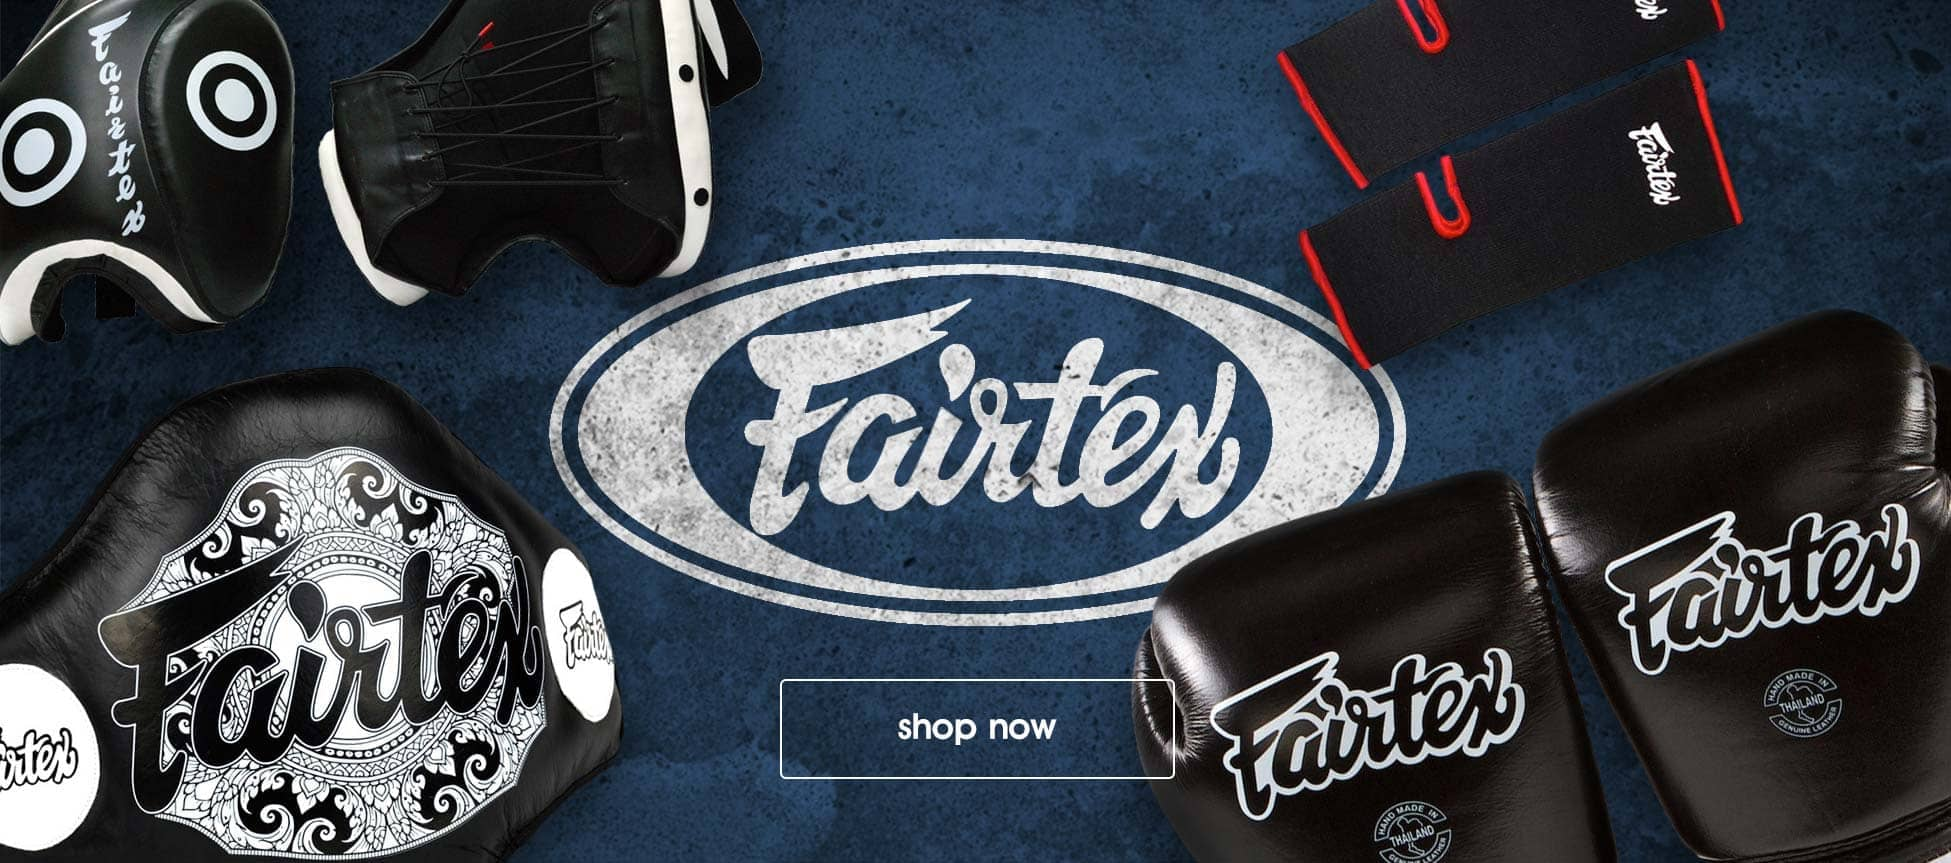 Shop Fairtex Fight Equipment